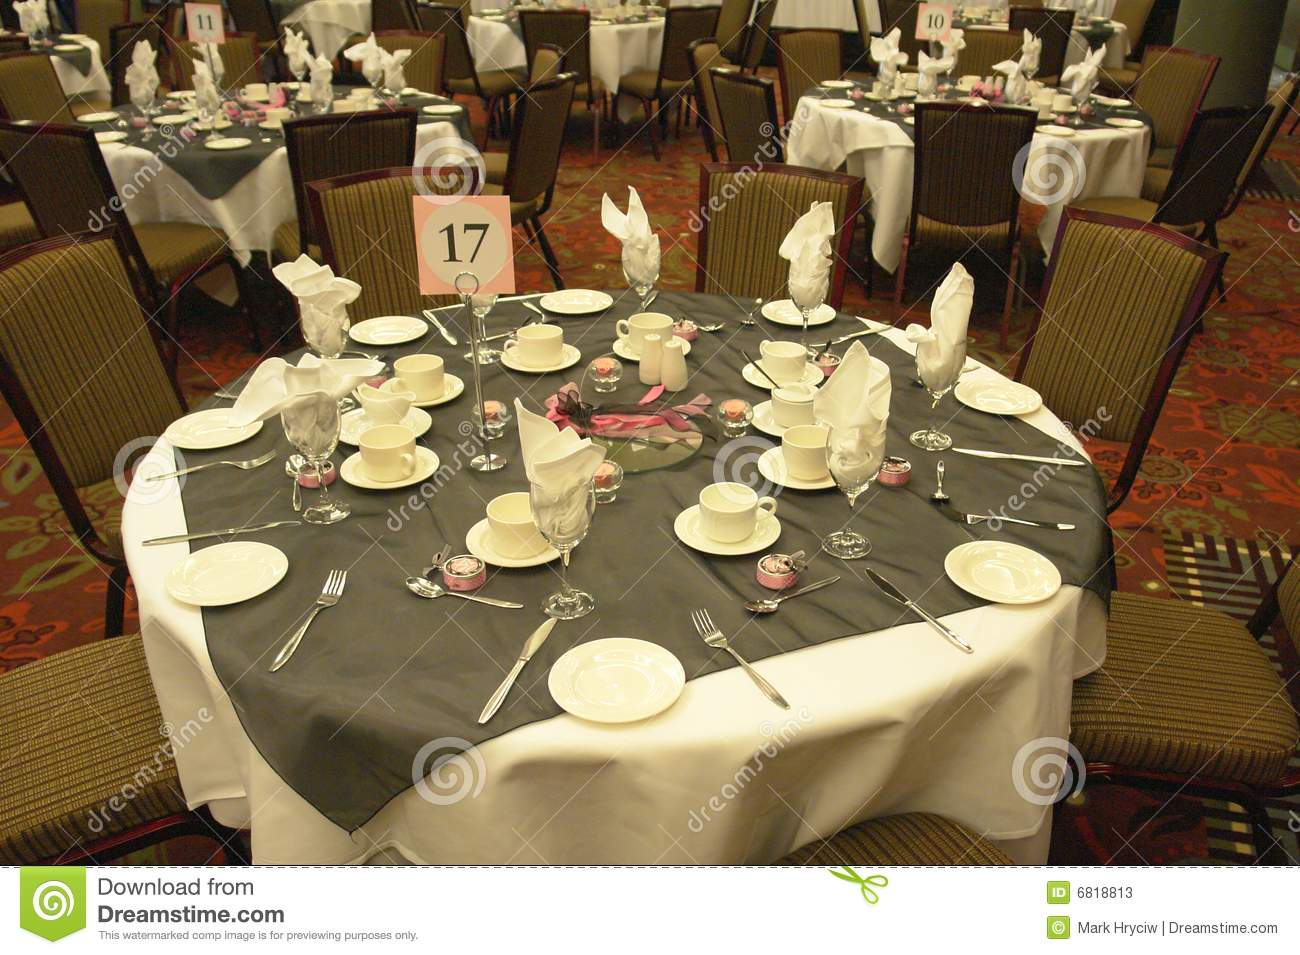 Royalty Free Stock Images Woodland Hotel Restaurant View Huge Window Image29859519 together with Royalty Free Stock Image Event Party Wedding Ballroom Image17323286 together with Fd C01 Gv 5000 White Gg as well Seats At A Table additionally Product. on banquet chairs for less